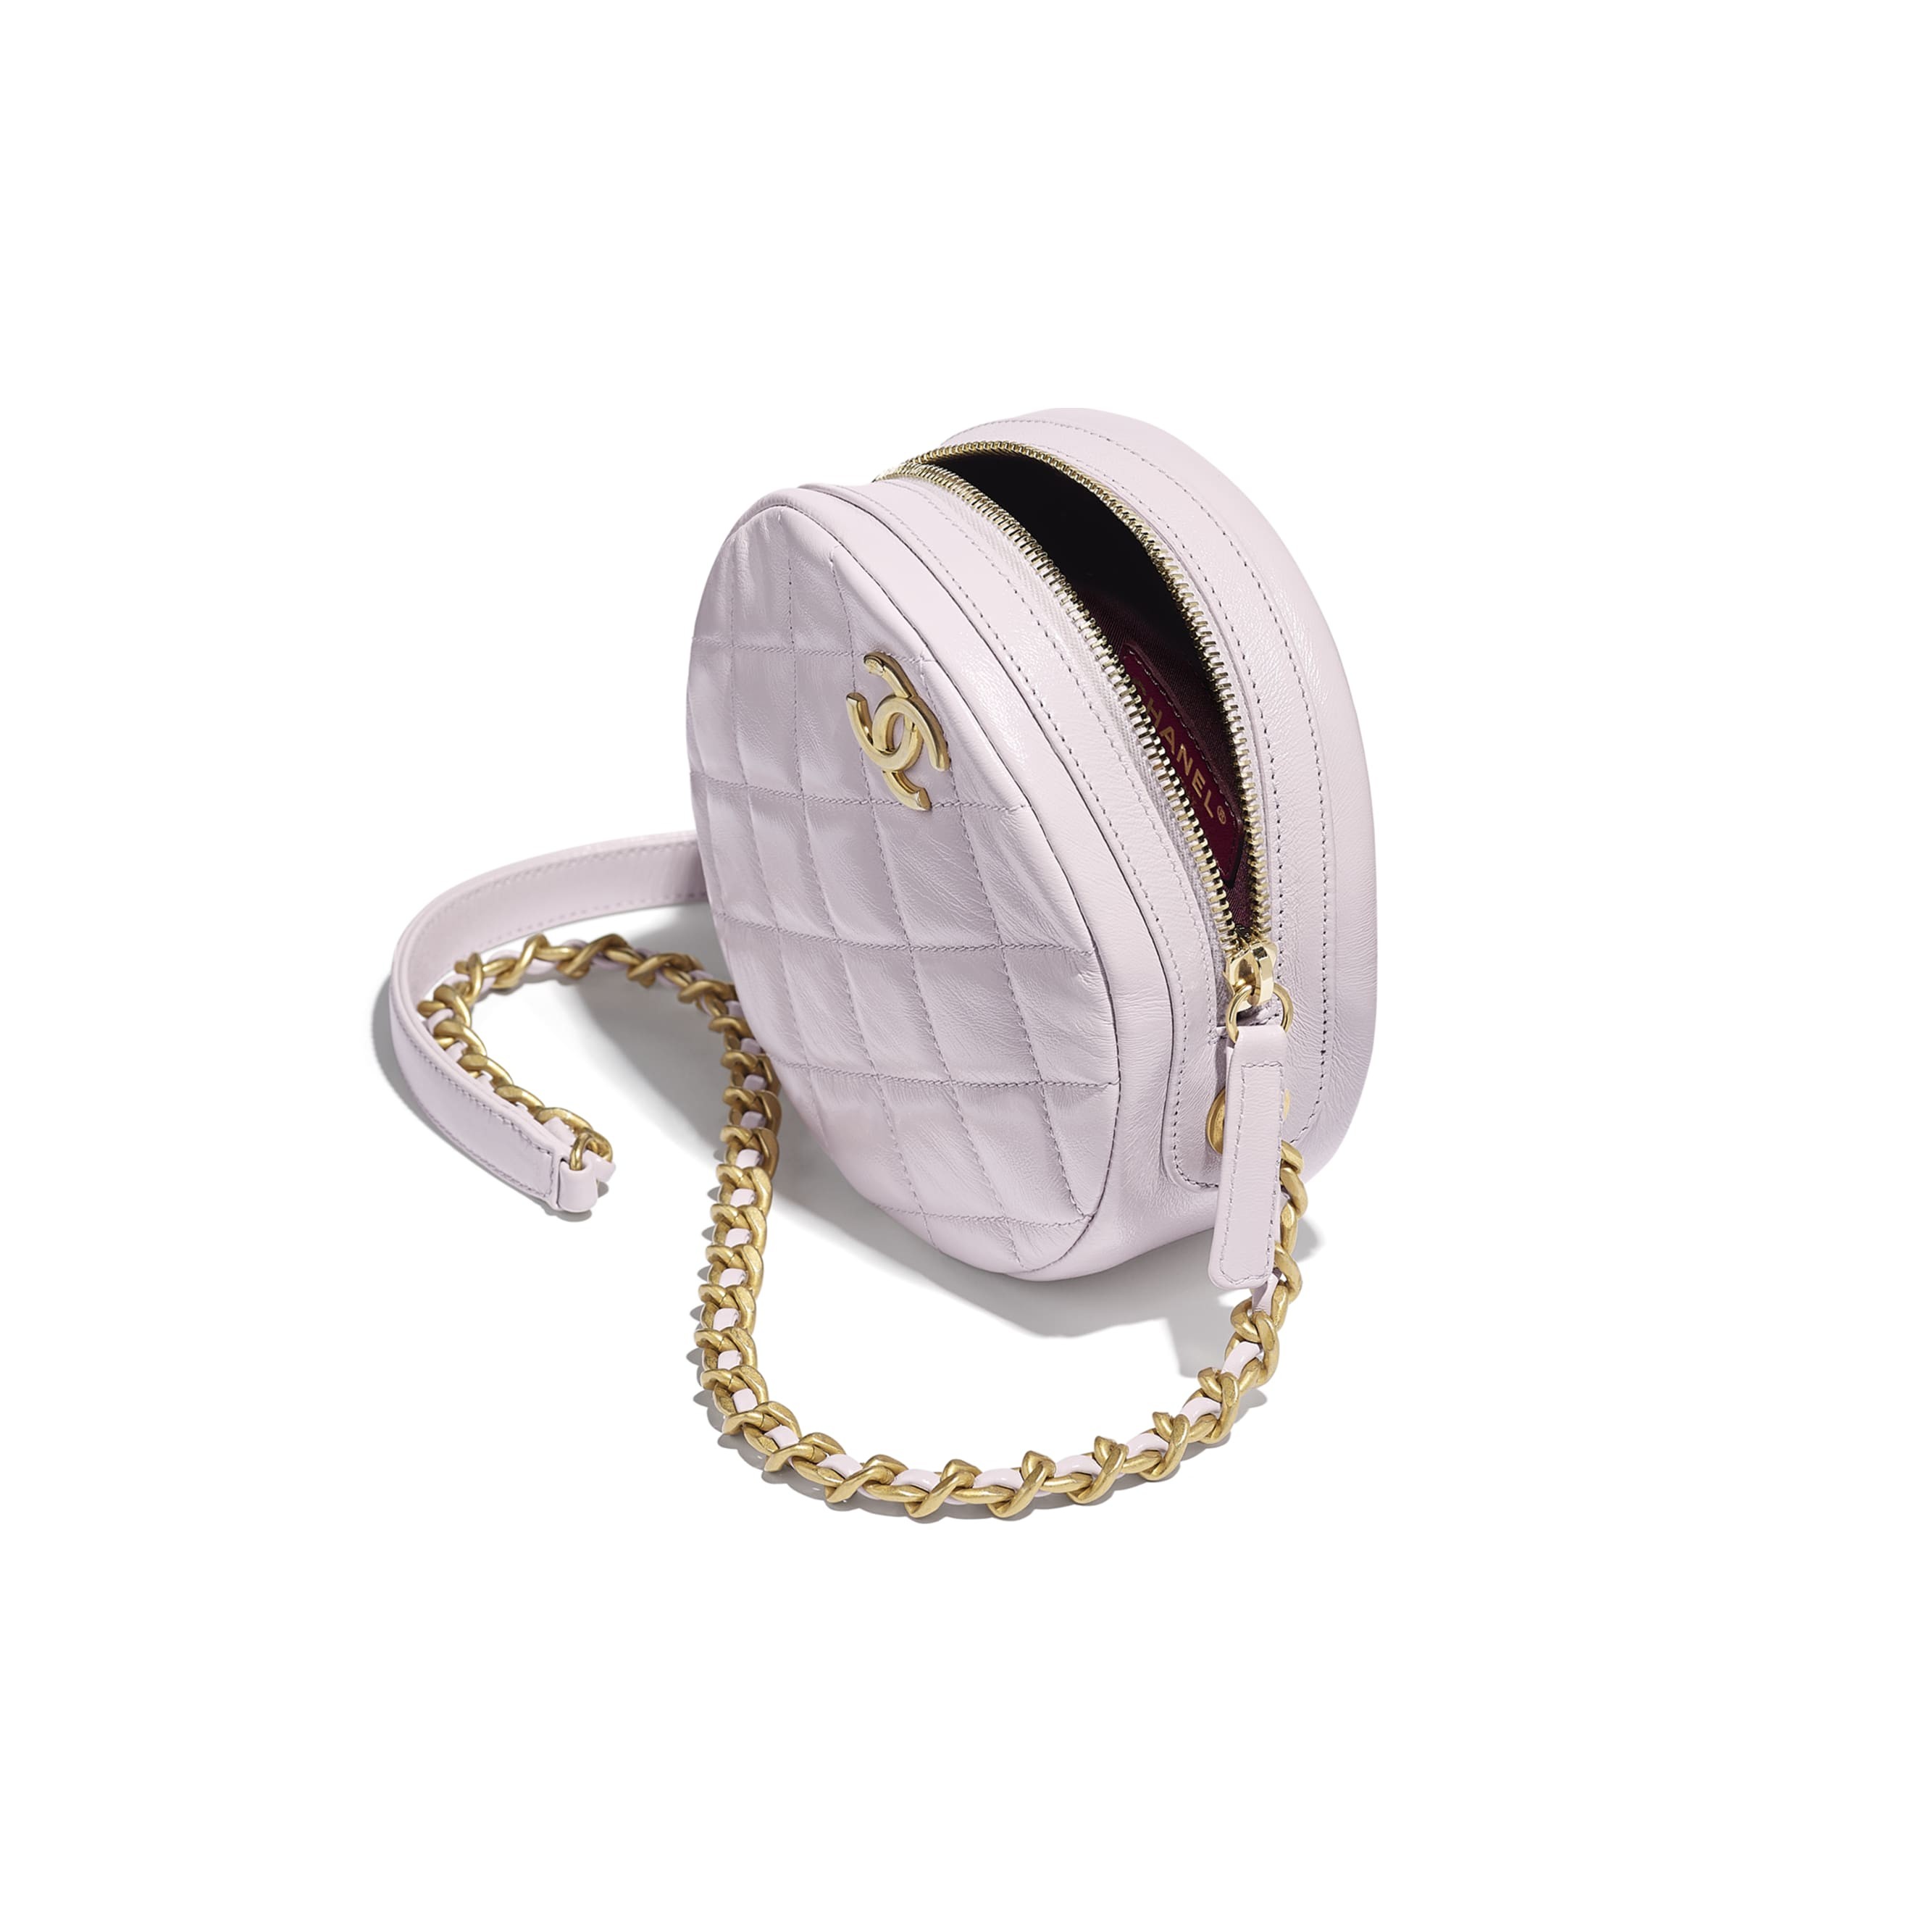 Small Round Bag - Lilac - Shiny Lambskin & Gold-Tone Metal - CHANEL - Other view - see standard sized version